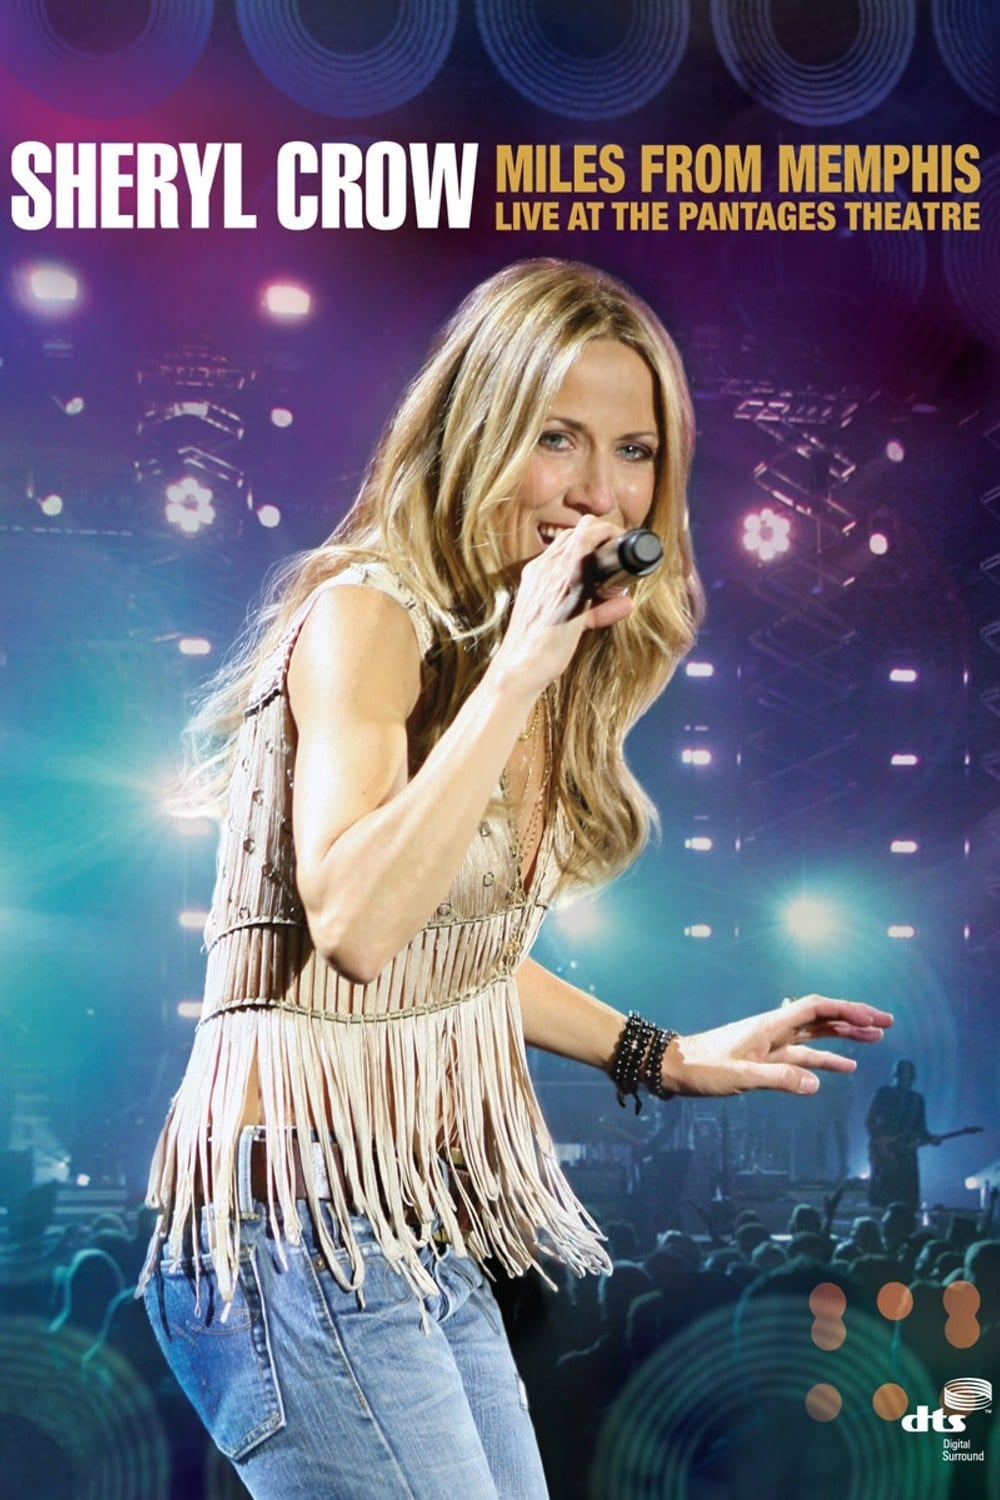 Sheryl Crow: Miles from Memphis (2011)